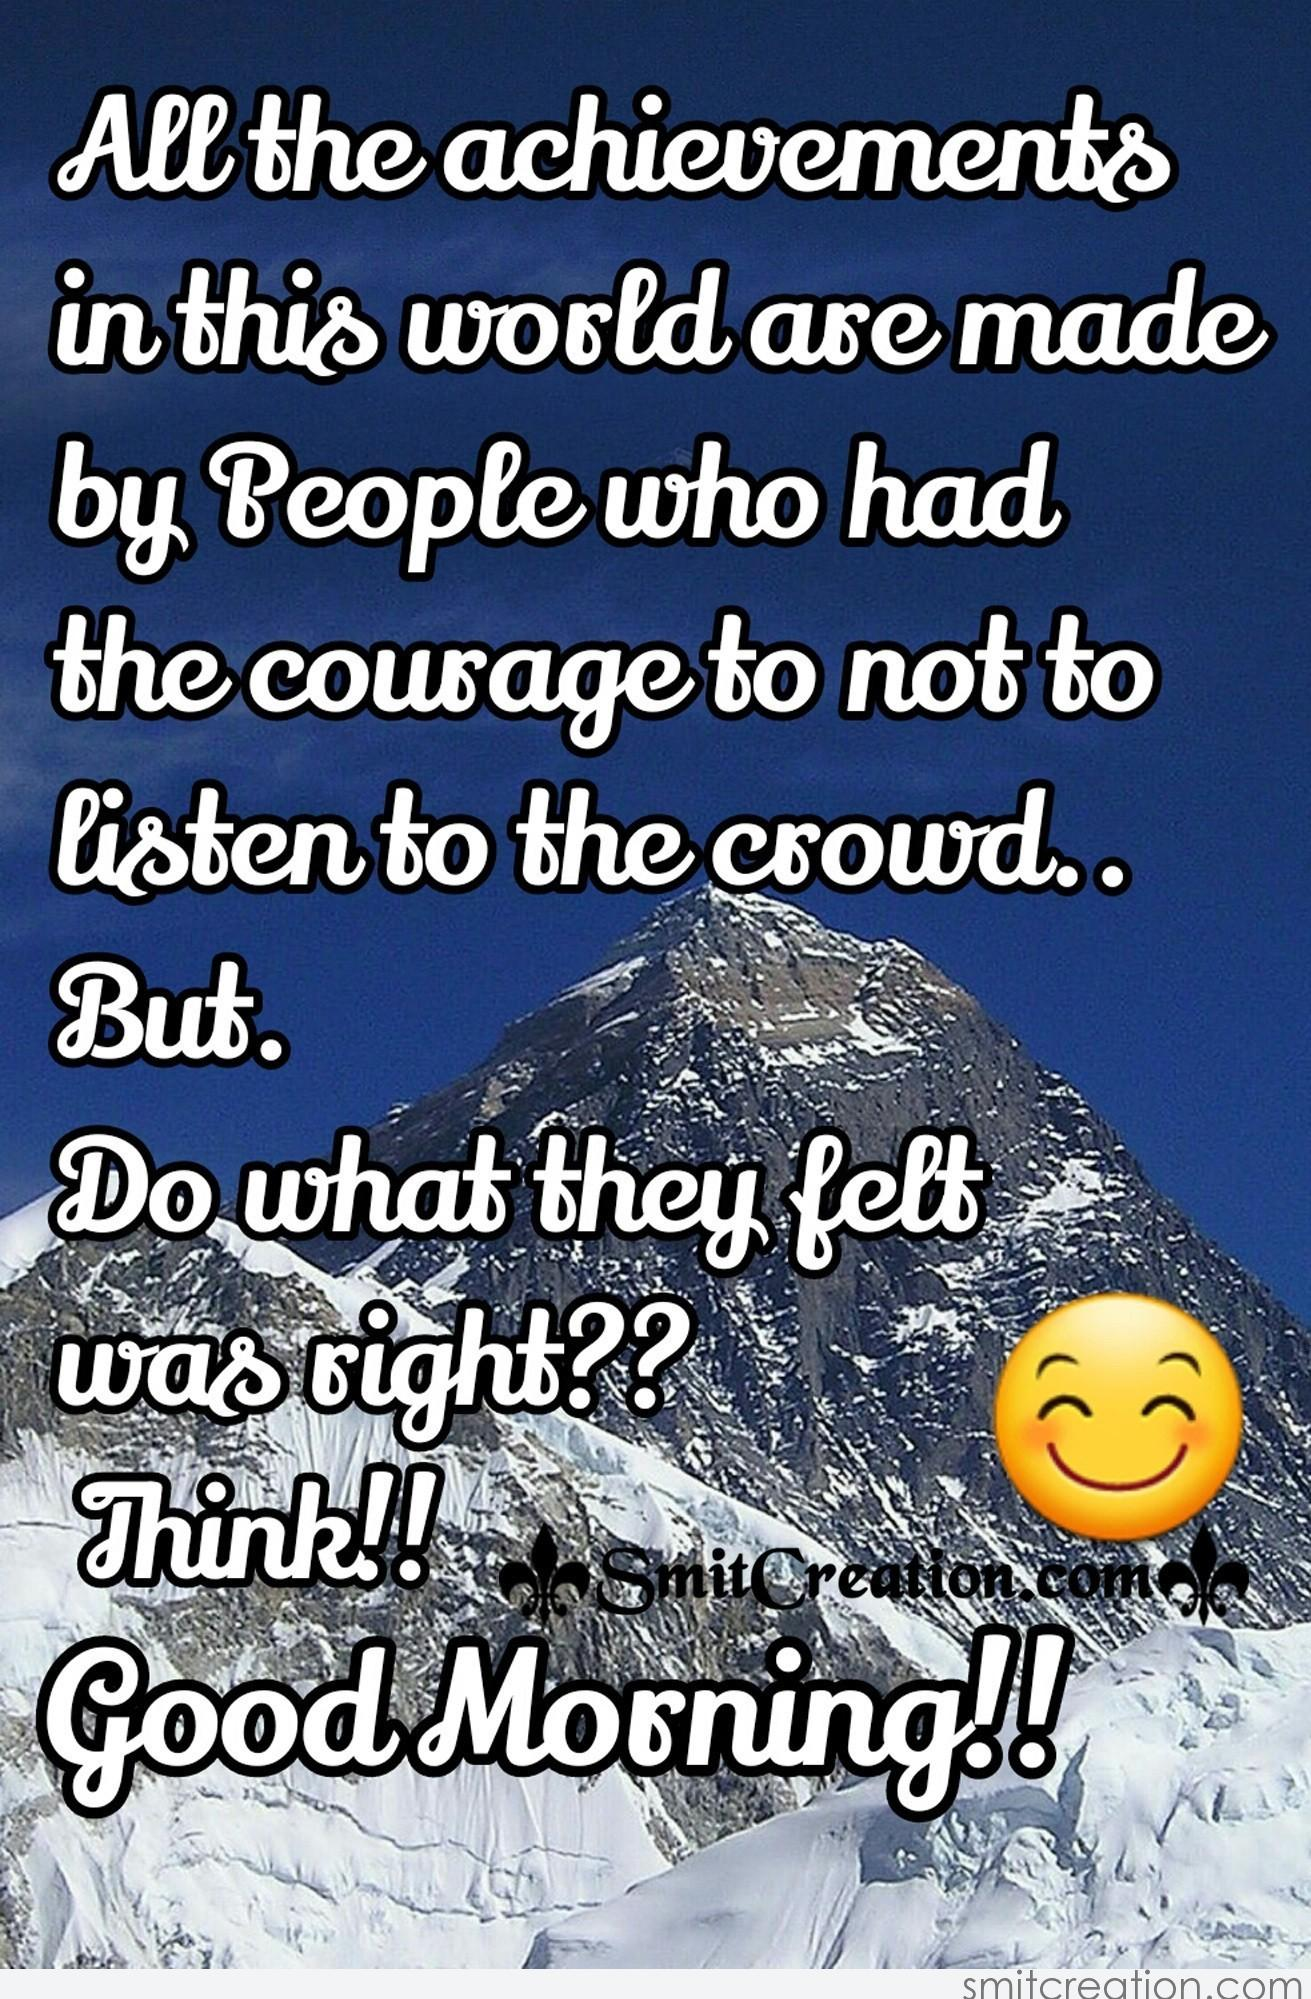 Good Morning Quotes For Facebook Good Morning Inspirational Quotes Pictures And Graphics